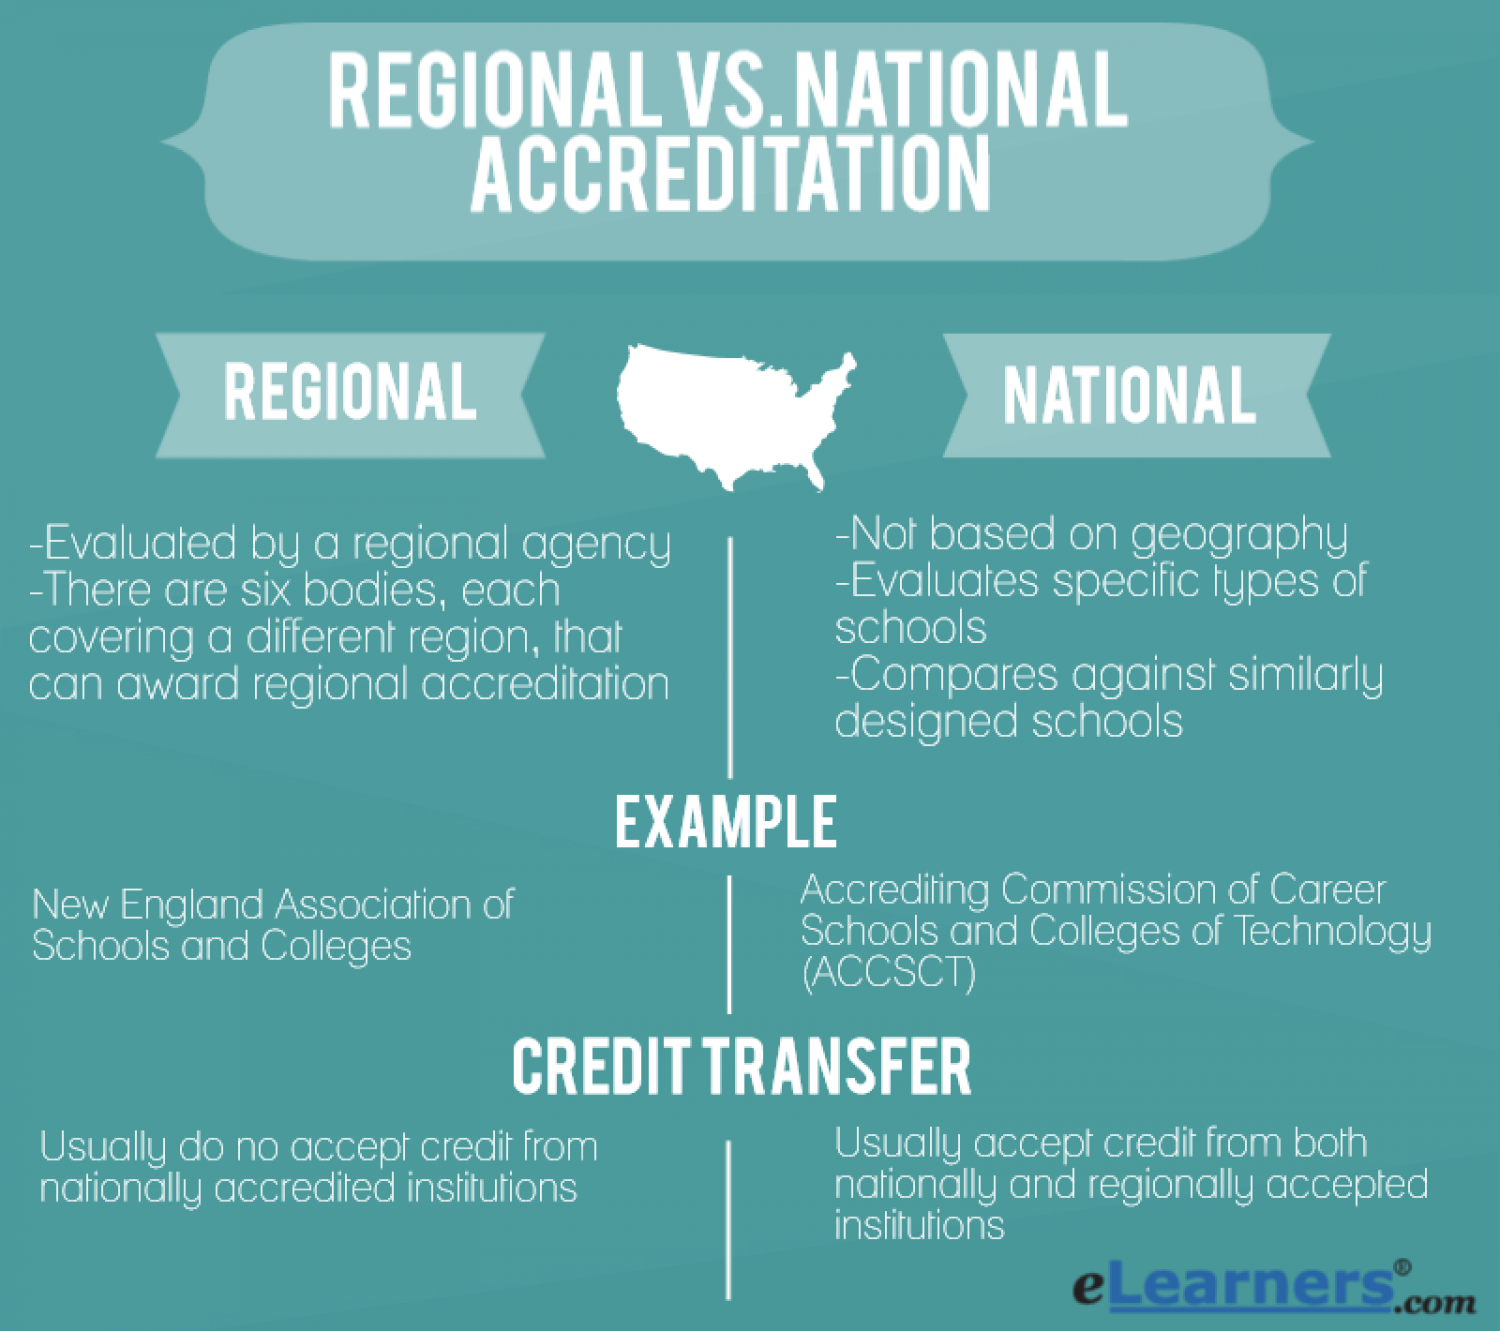 College Accreditation - Regional vs National Accreditation  Infographic